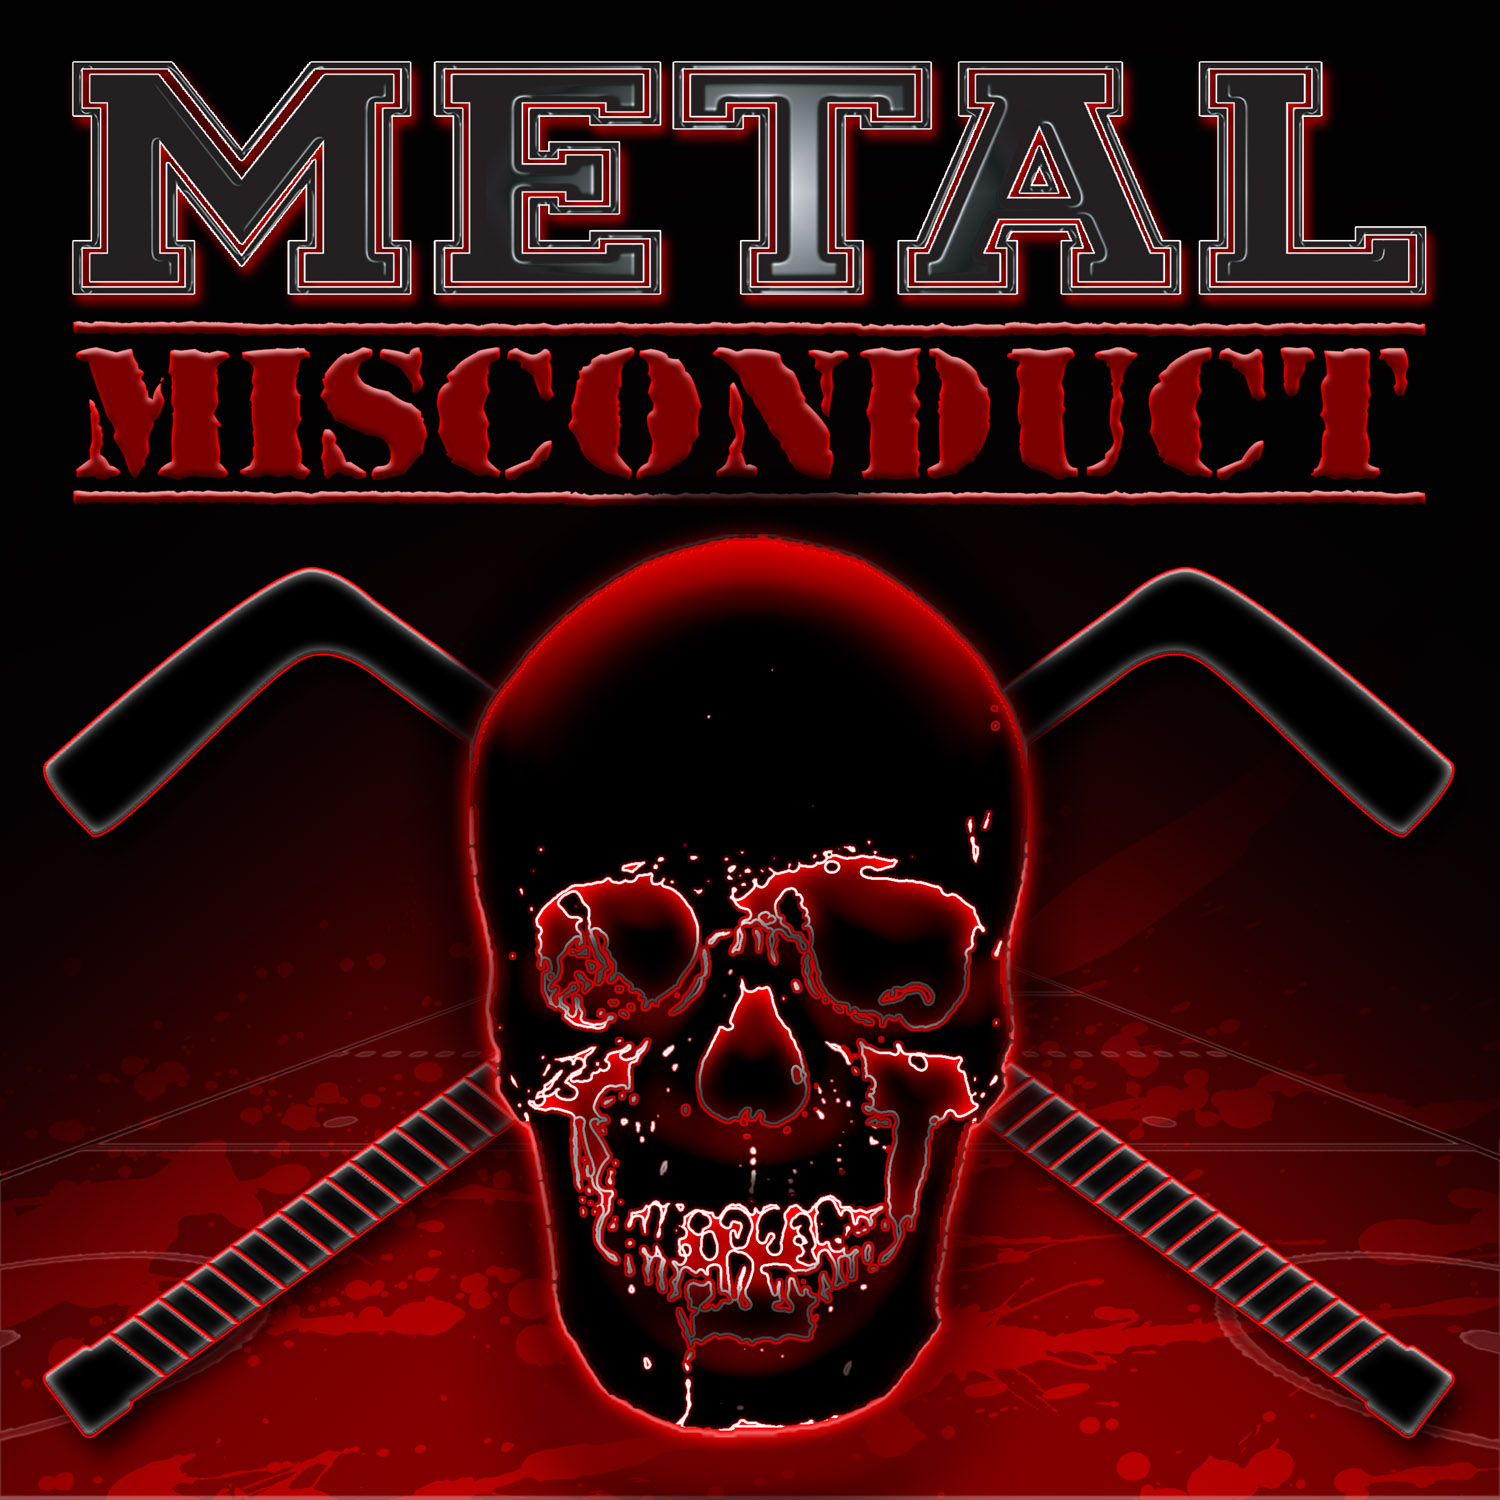 Metal Misconduct